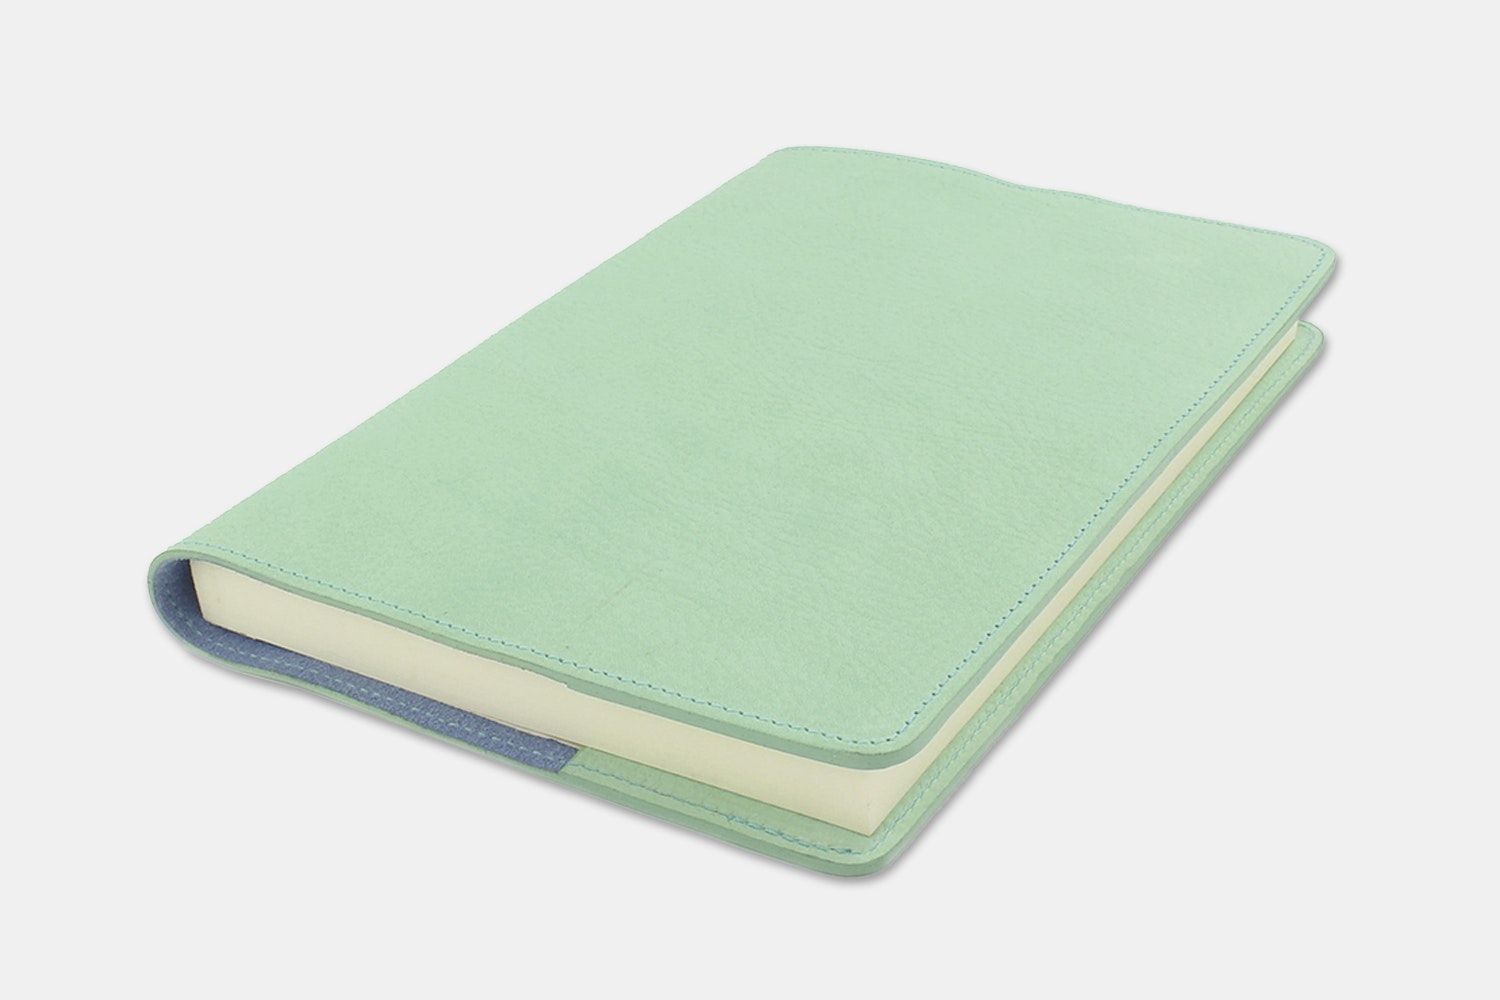 Notebook Cover - Mint/Sky Blue  (+ $30)